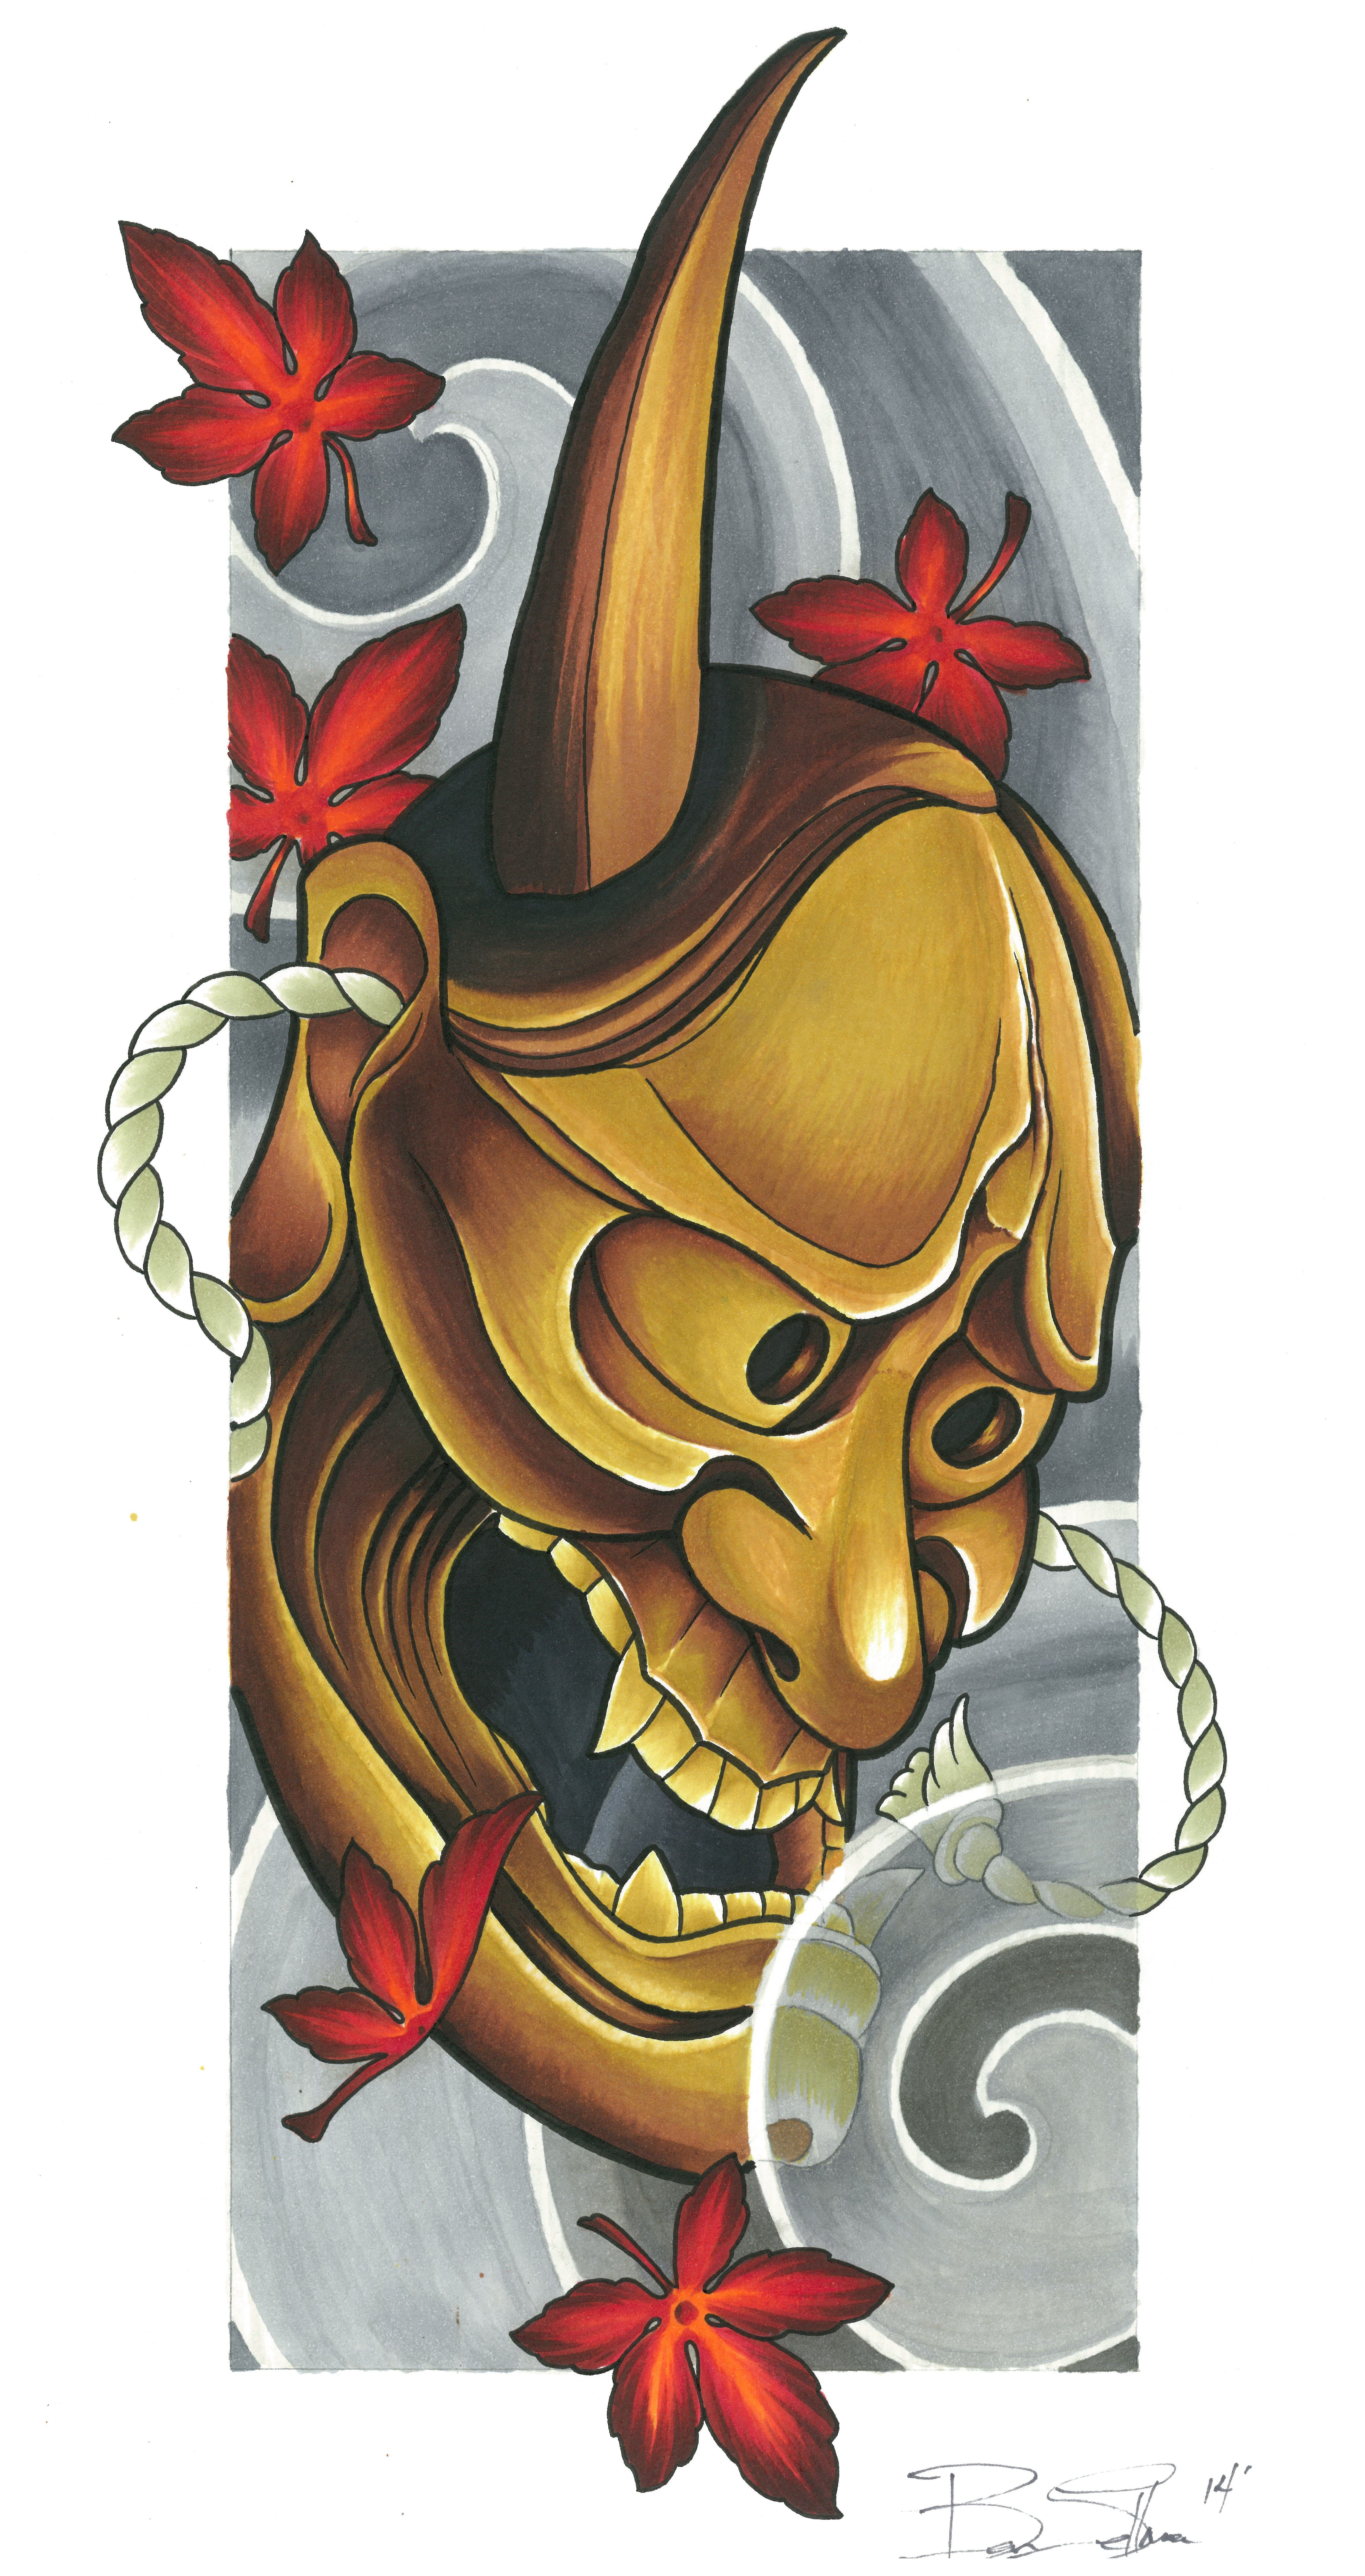 Image of Hannya Mask (Fall series) | Hannya | Pinterest ...